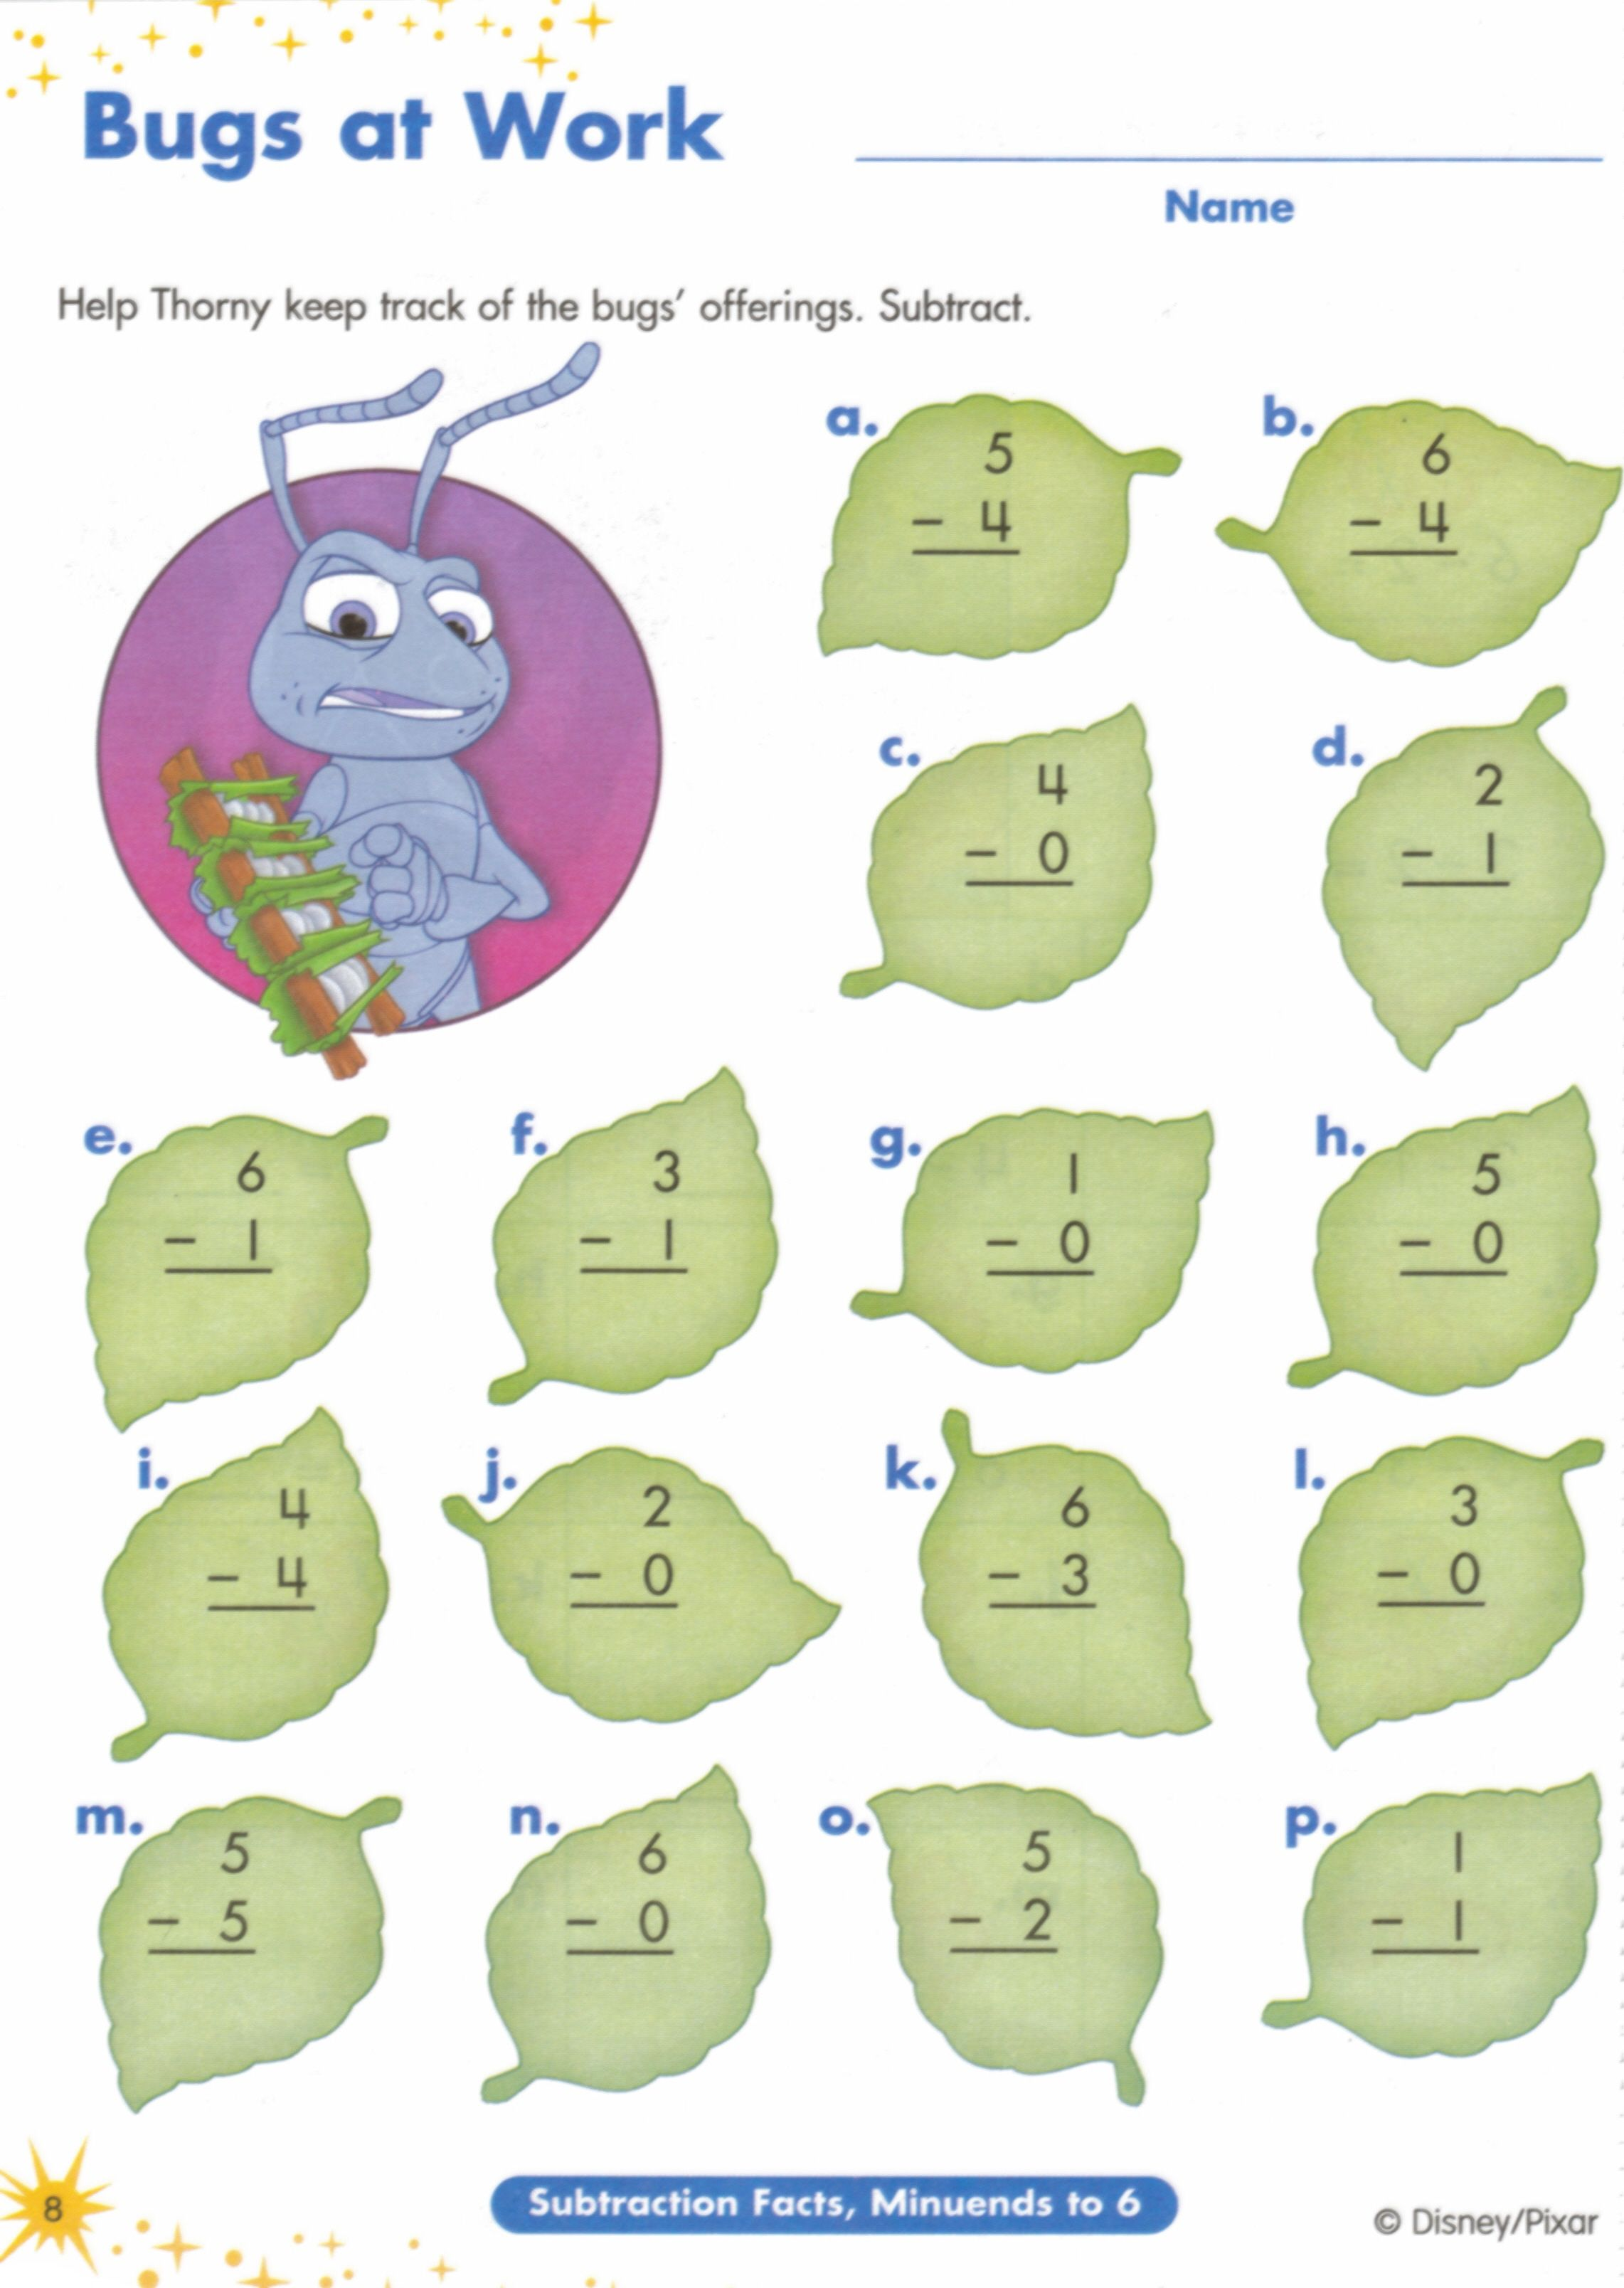 Aldiablosus  Surprising  Images About Worksheets On Pinterest  Fun Facts For Kids  With Interesting  Images About Worksheets On Pinterest  Fun Facts For Kids Earth Day Worksheets And Jungles With Cool Commutative Property And Associative Property Worksheet Also Year  Maths Worksheets In Addition Functional Grammar Worksheets And Animals Worksheets For Grade  As Well As Fractions To Decimals Worksheets Th Grade Additionally English Worksheet Grade  From Pinterestcom With Aldiablosus  Interesting  Images About Worksheets On Pinterest  Fun Facts For Kids  With Cool  Images About Worksheets On Pinterest  Fun Facts For Kids Earth Day Worksheets And Jungles And Surprising Commutative Property And Associative Property Worksheet Also Year  Maths Worksheets In Addition Functional Grammar Worksheets From Pinterestcom